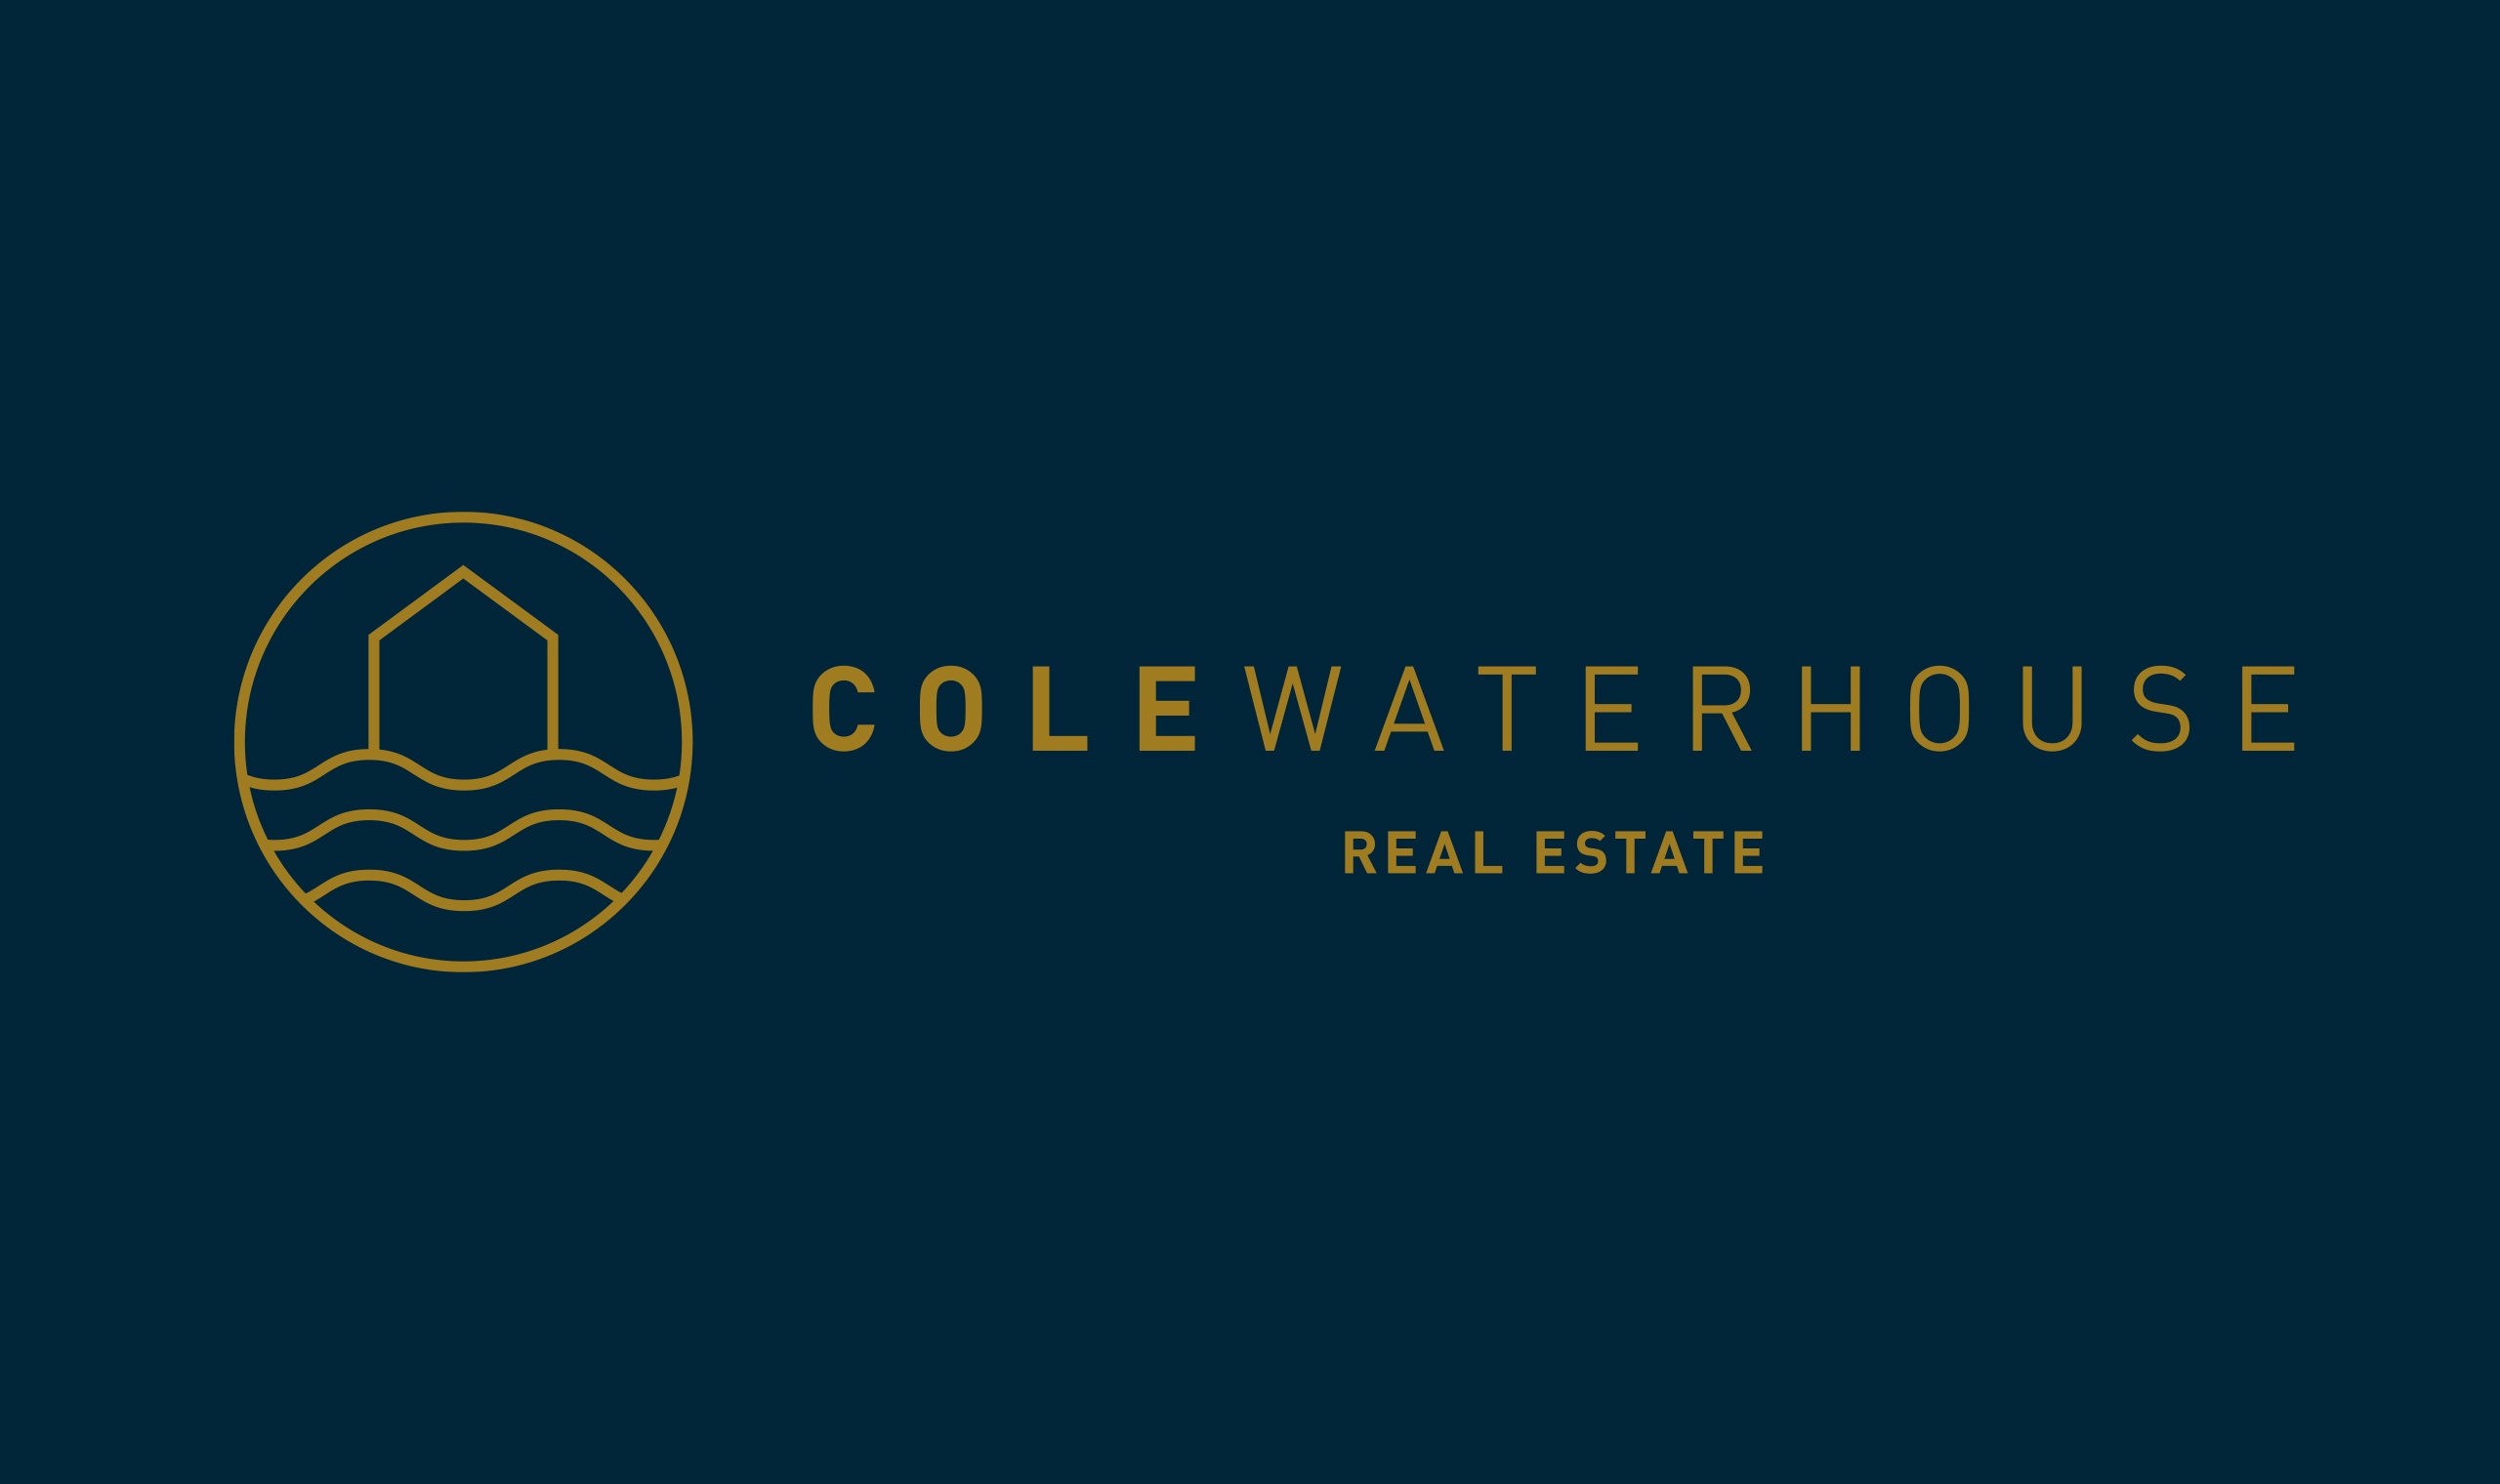 Cole Waterhouse Manchester Website Design